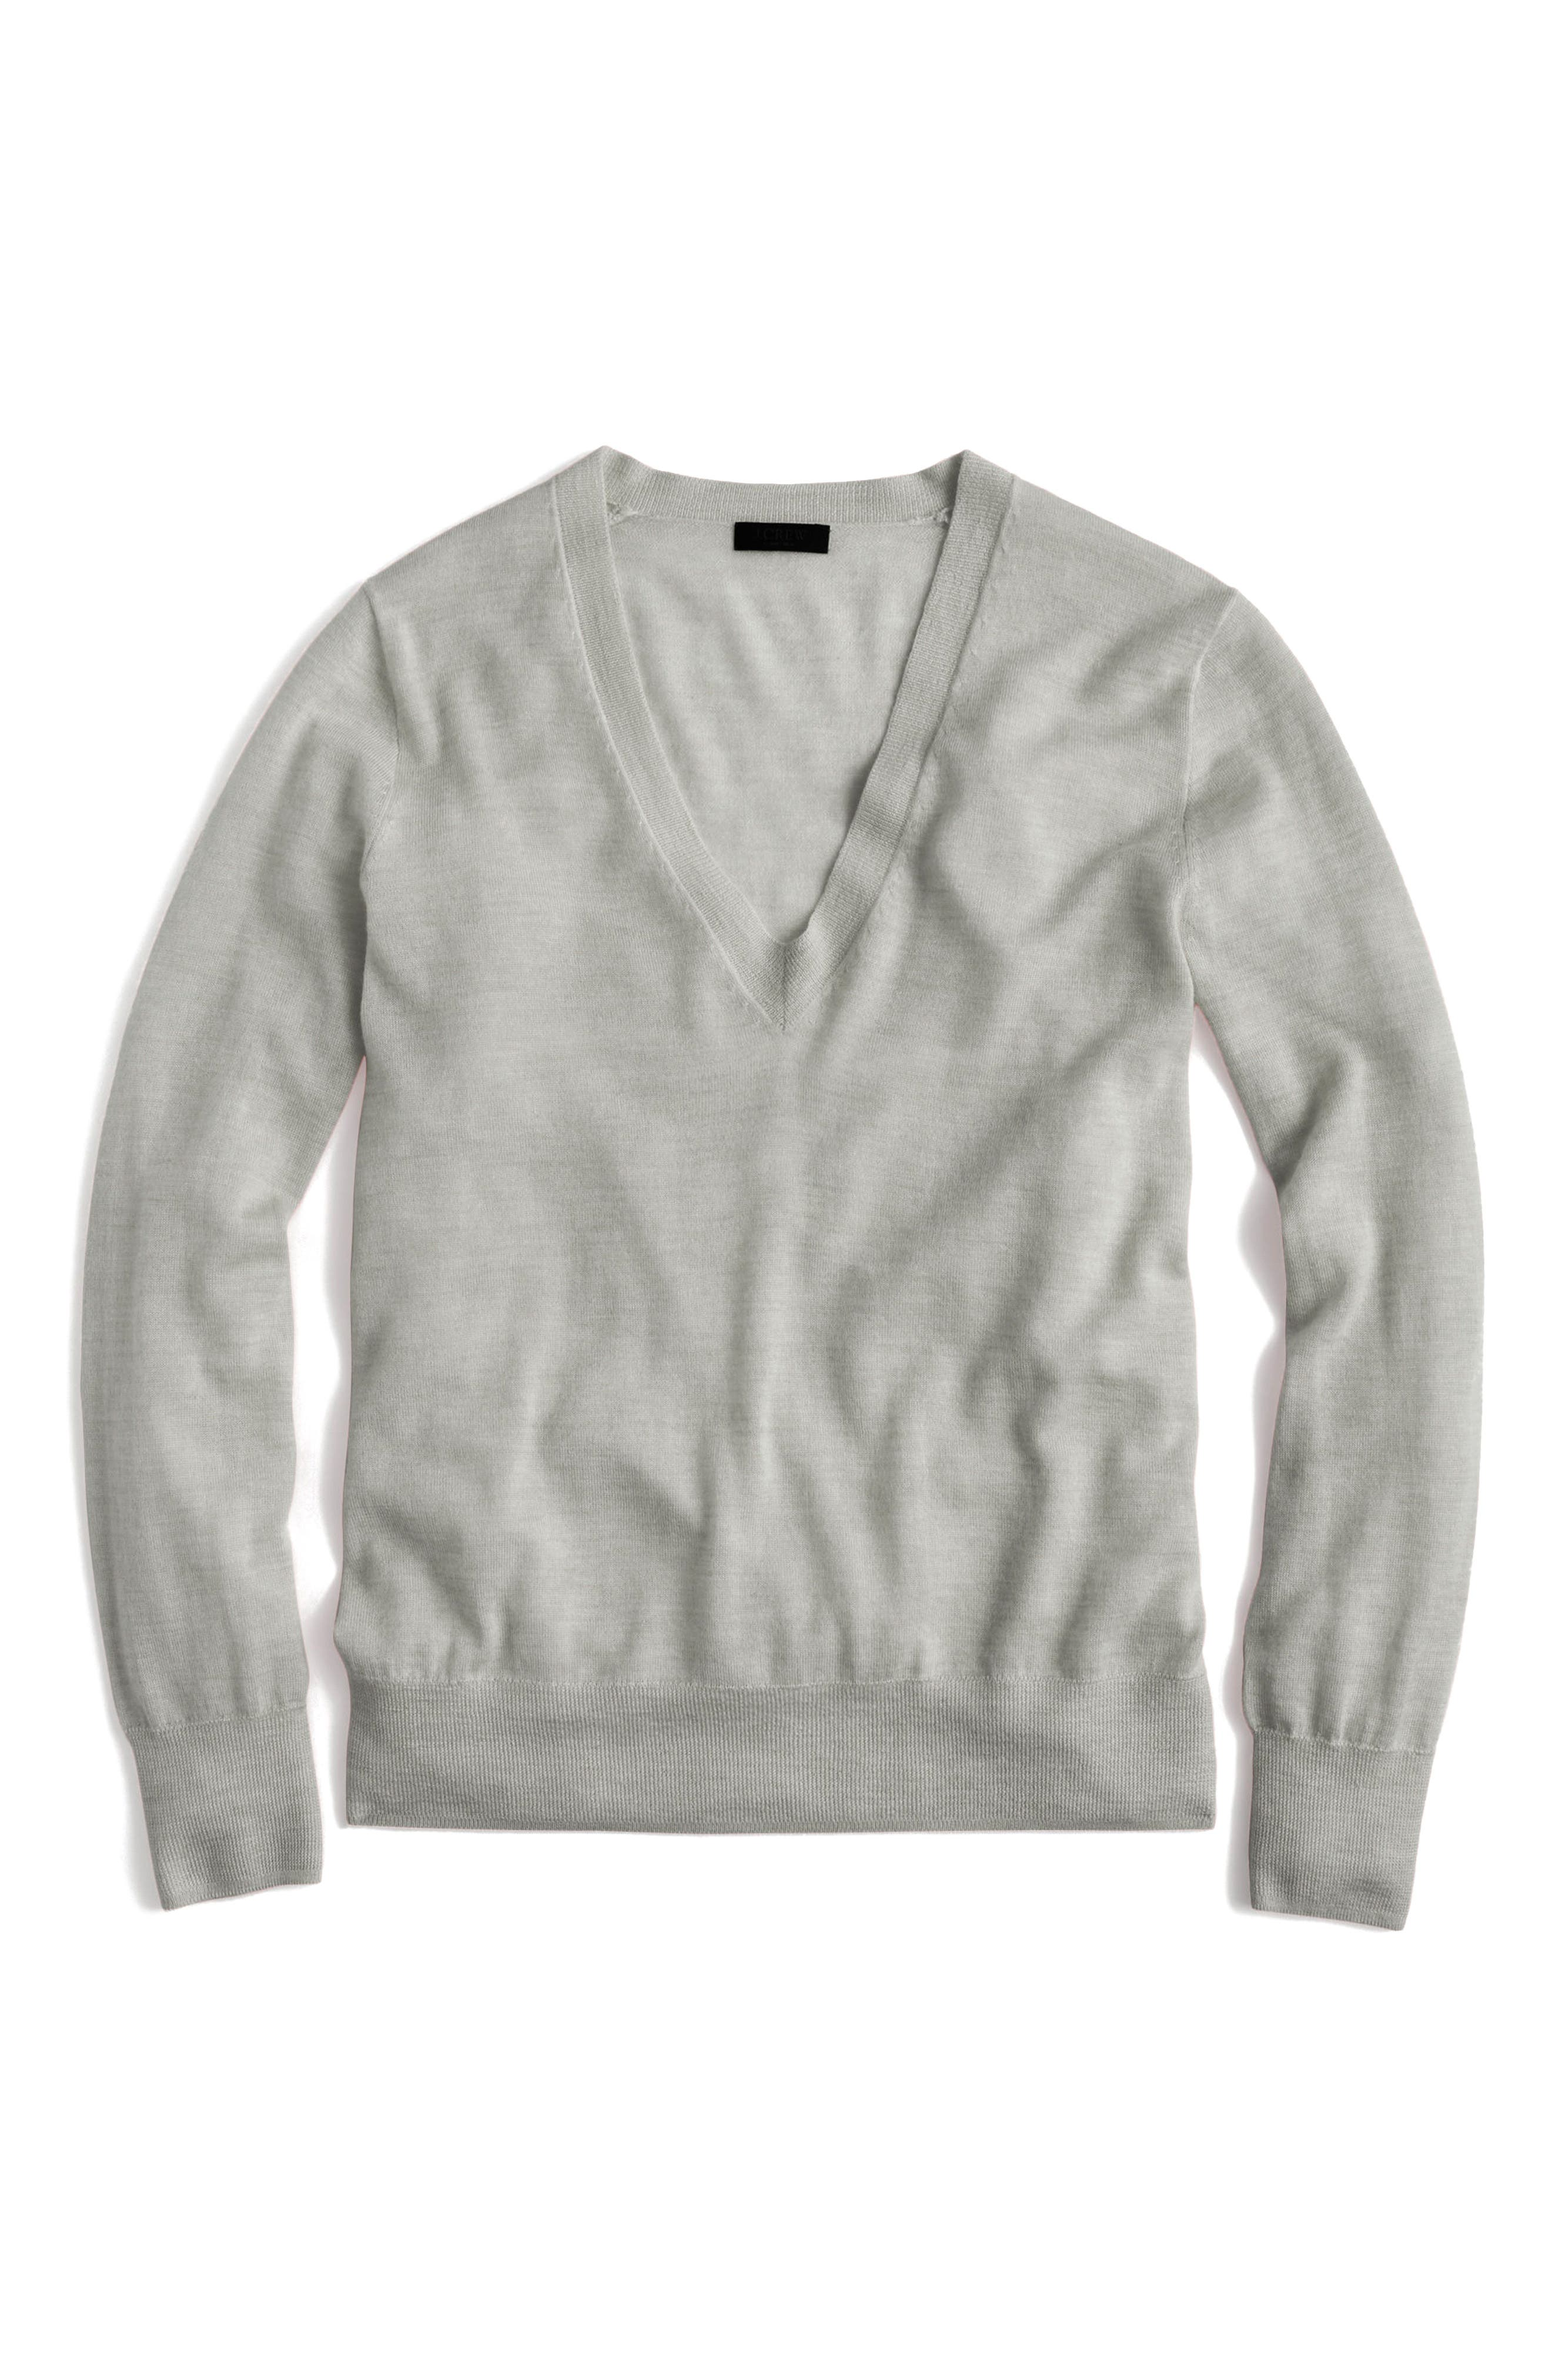 J.Crew V-Neck Italian Featherweight Cashmere Sweater